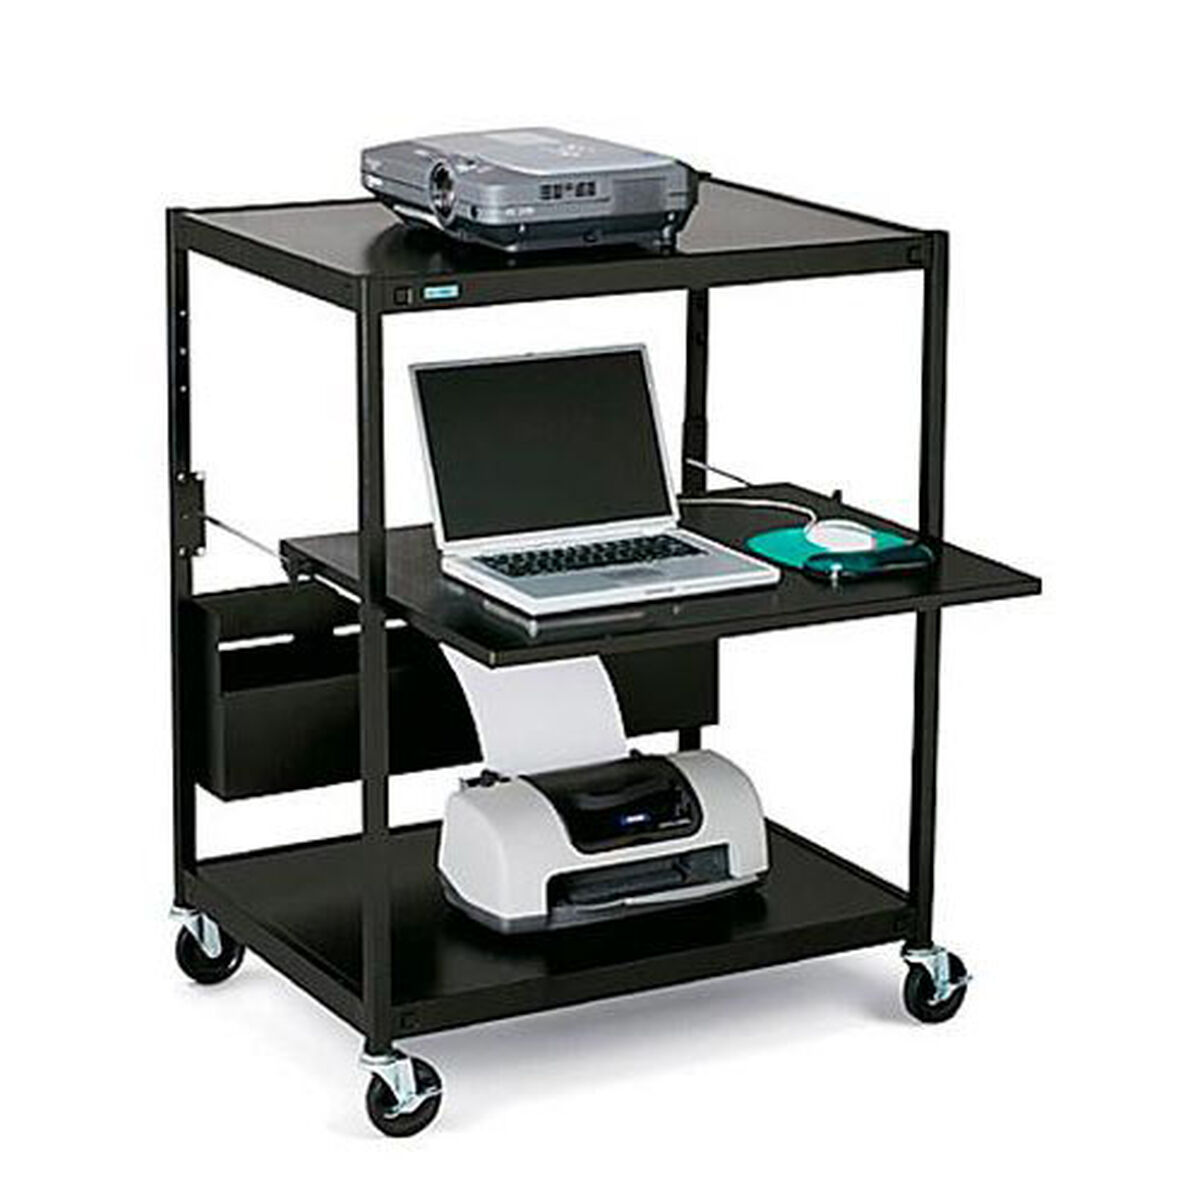 Bretford mobile notebook data projector cart with 6 for Furniture 4 less outlet